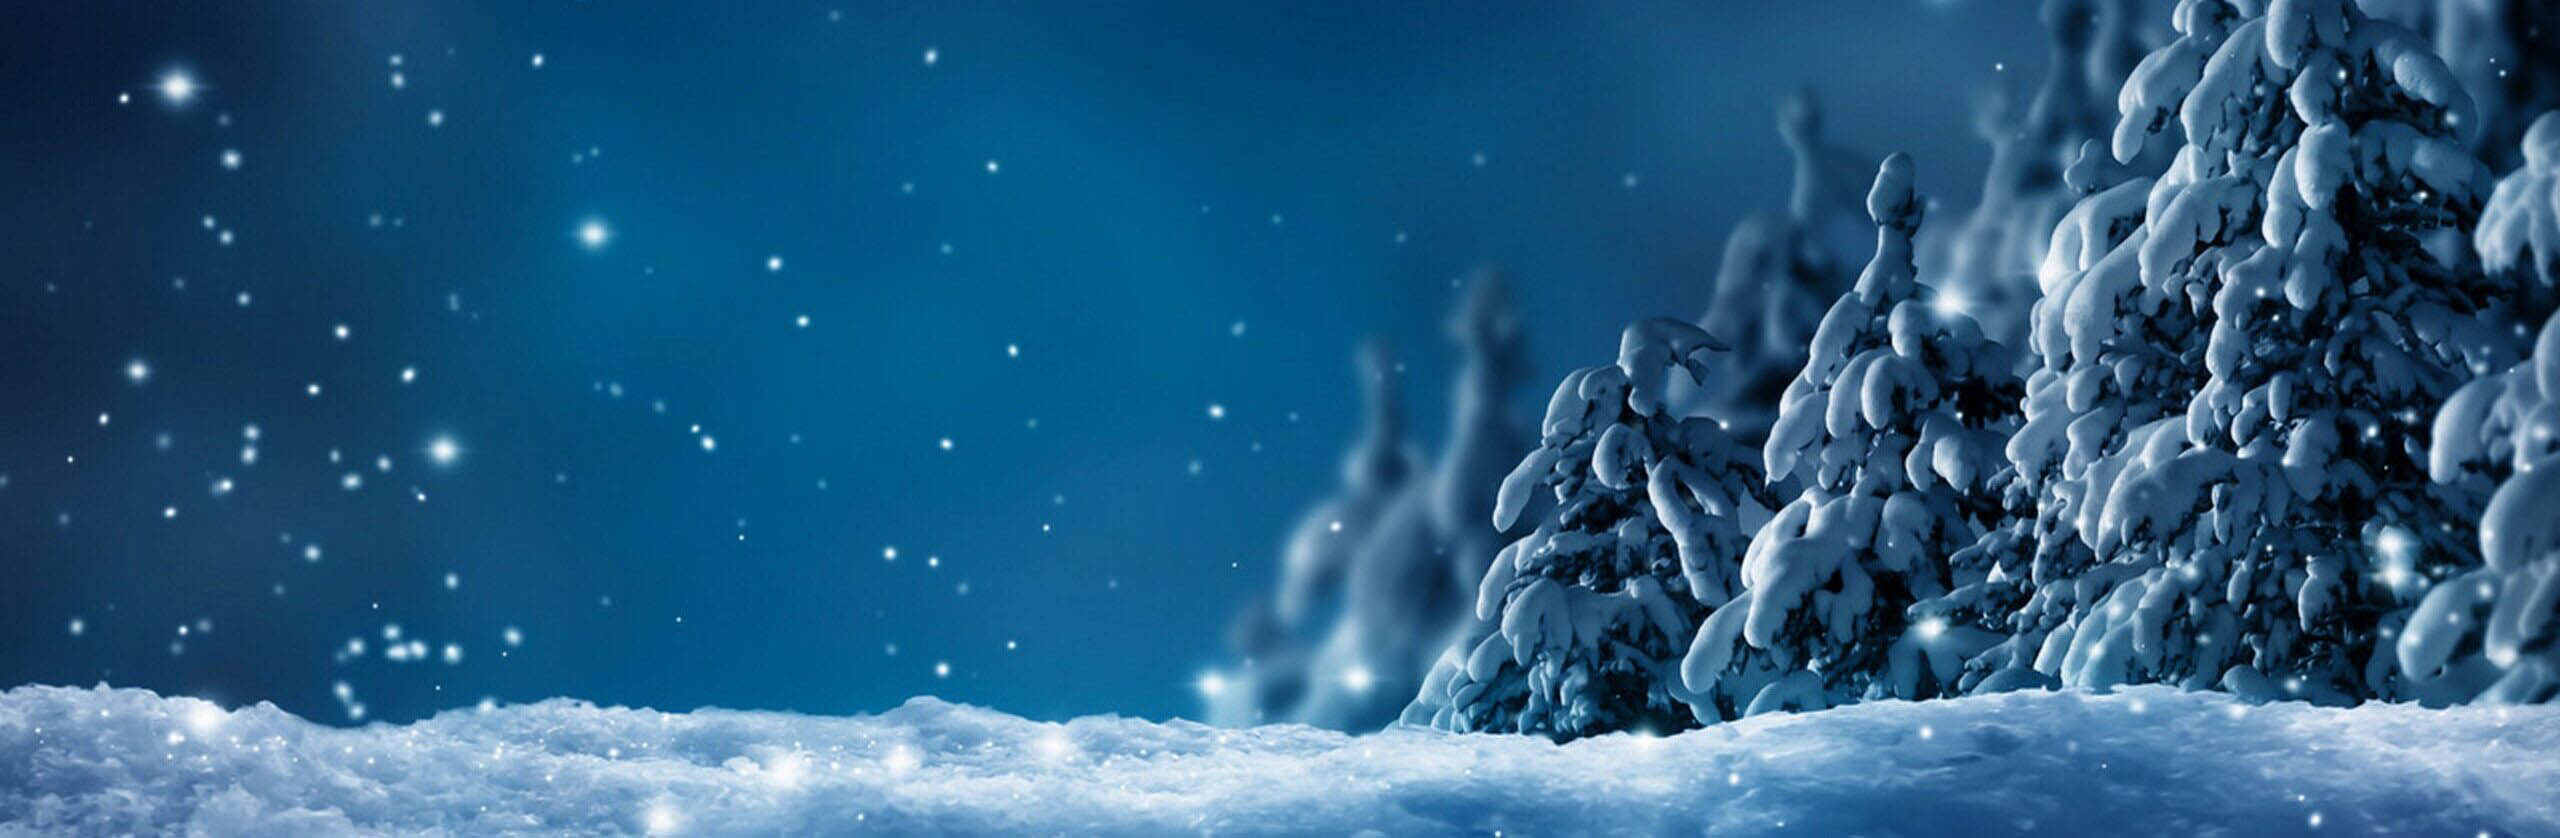 snowy winter forest by night